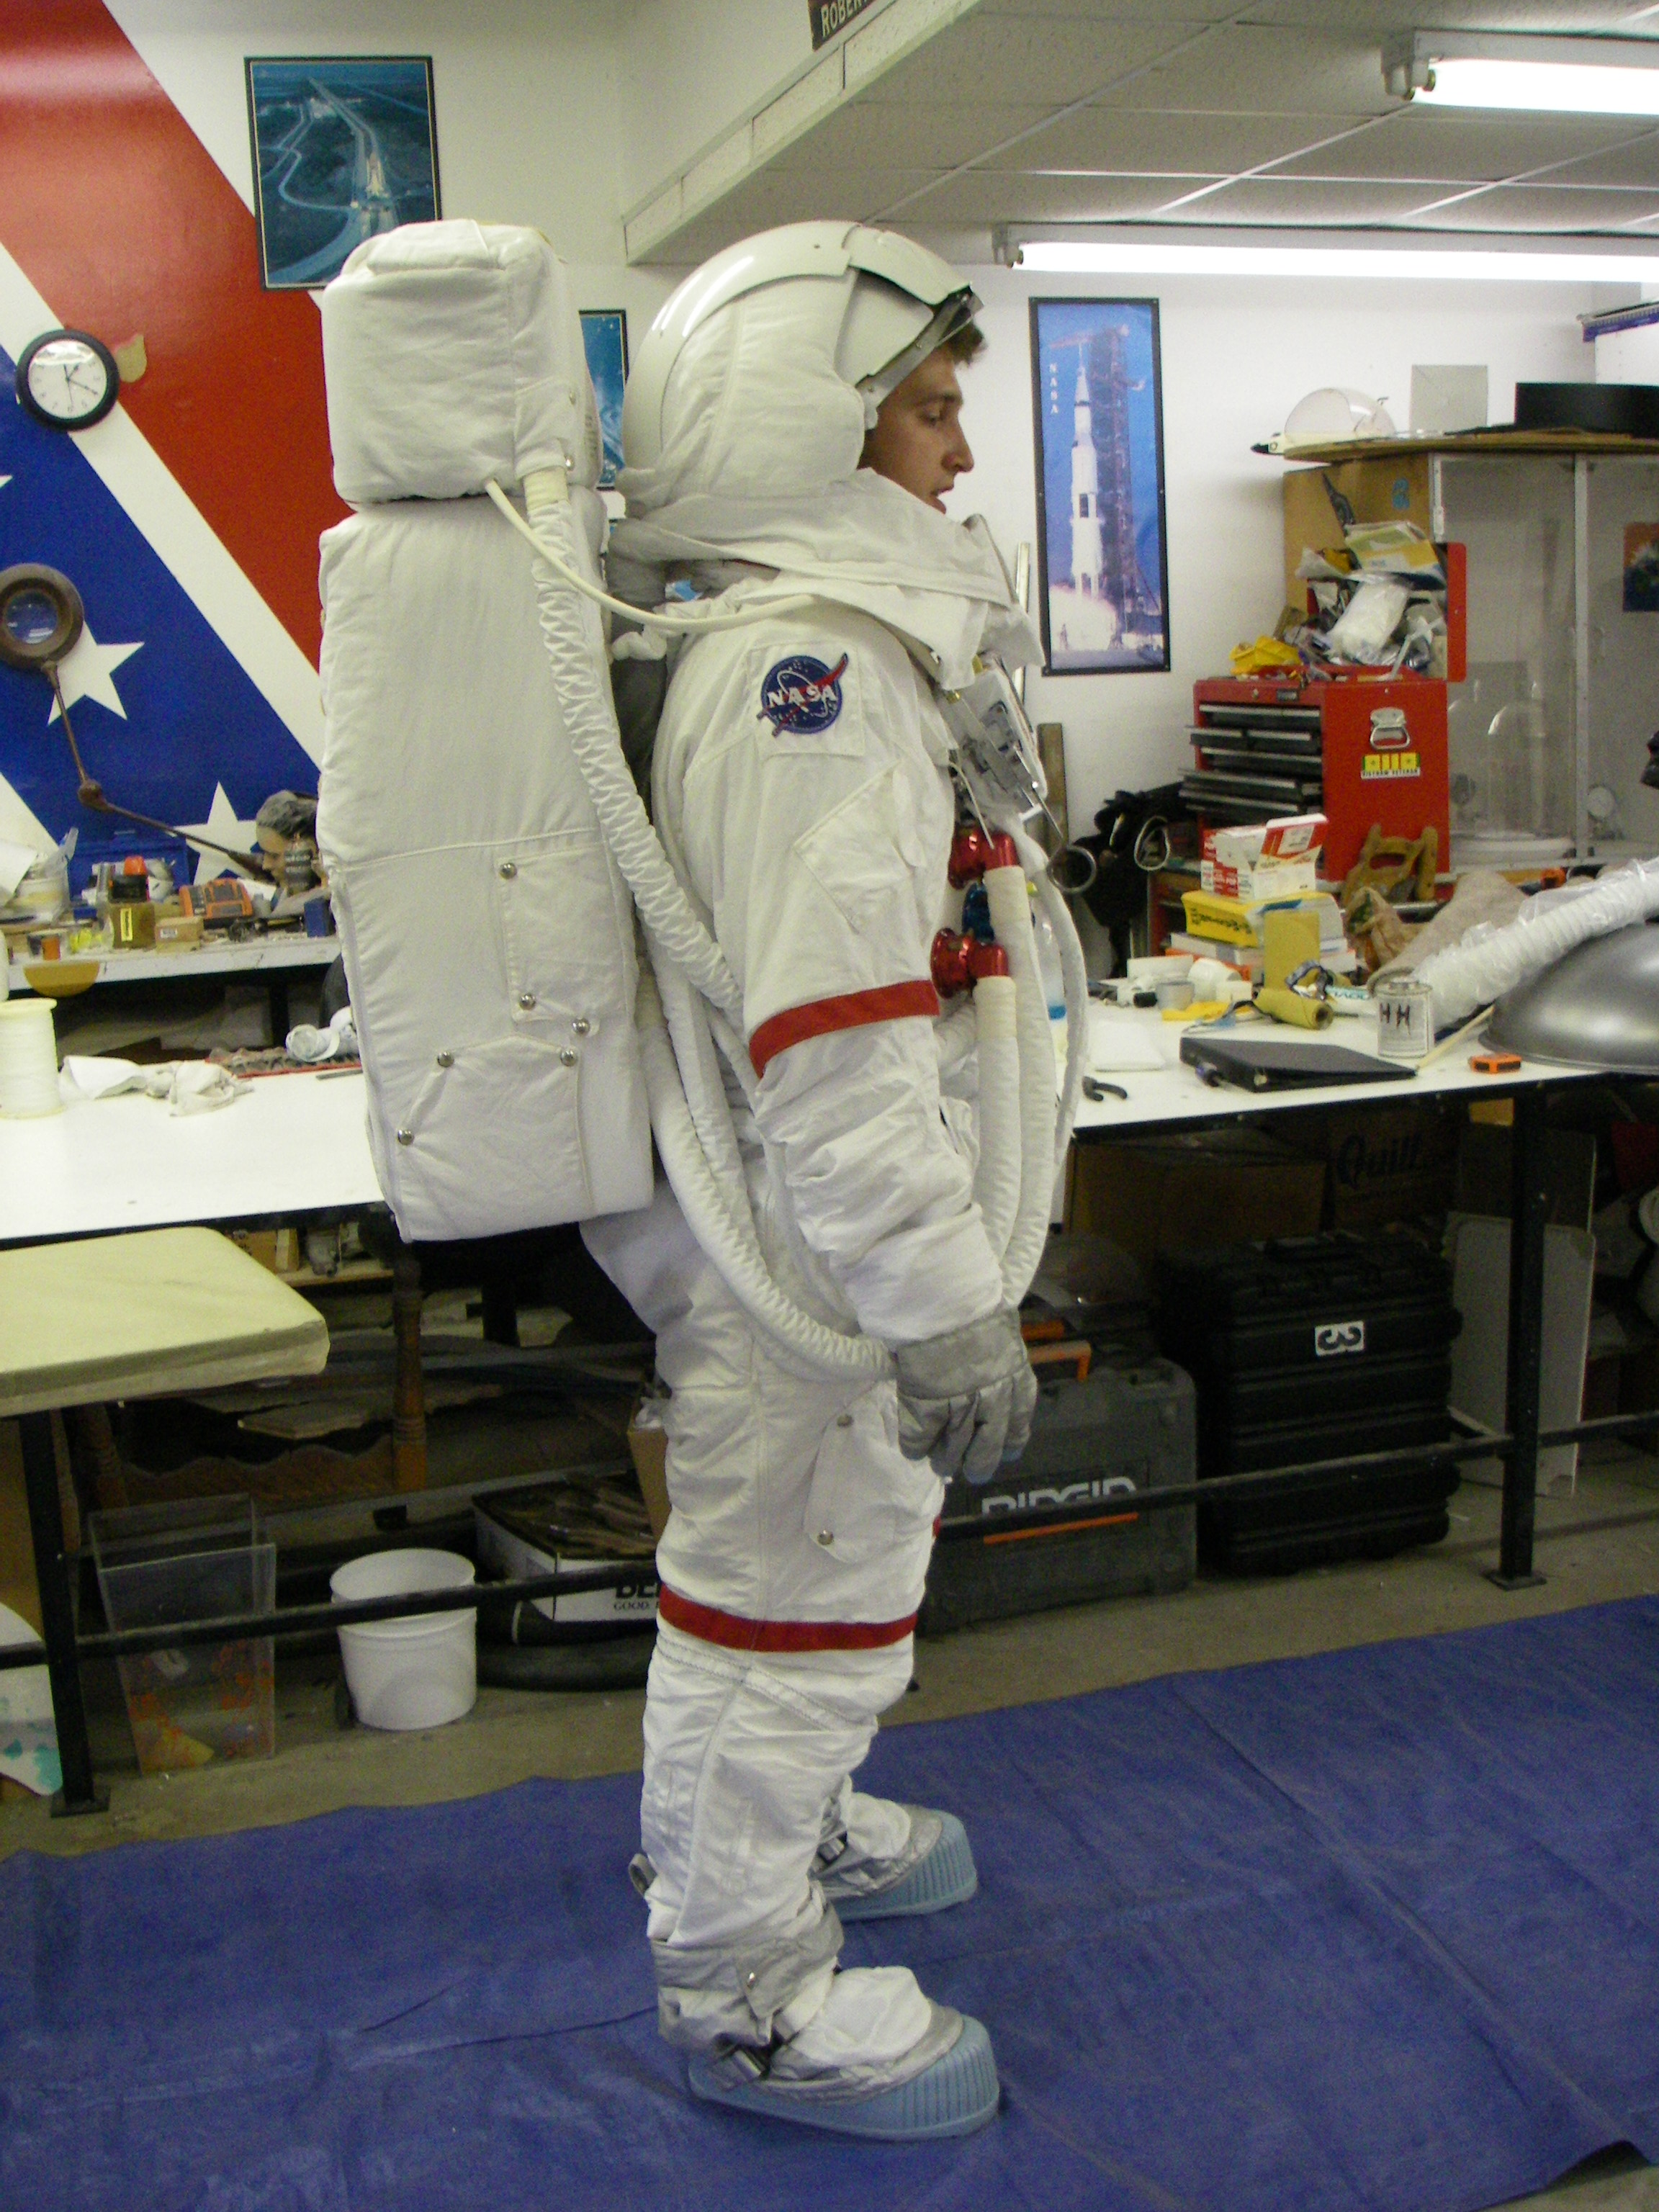 apollo space suit parts - photo #28